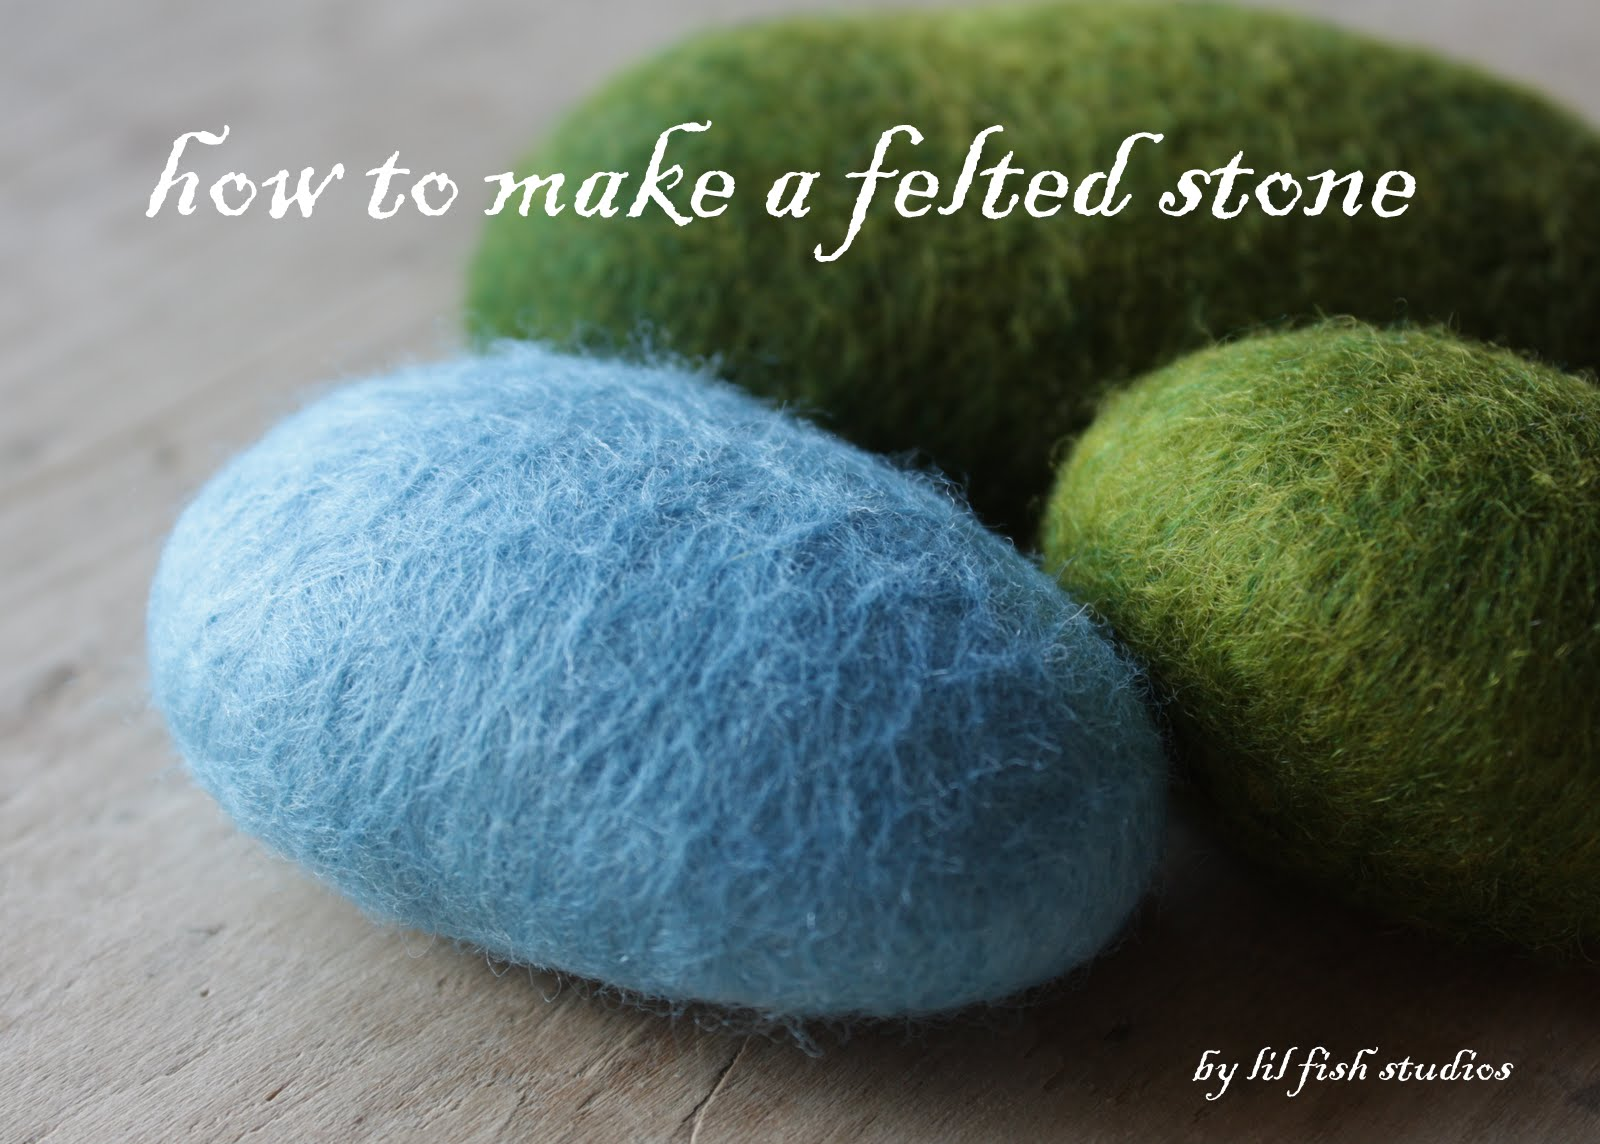 Lil fish studios how to make a felted stone for Felted wool boulders